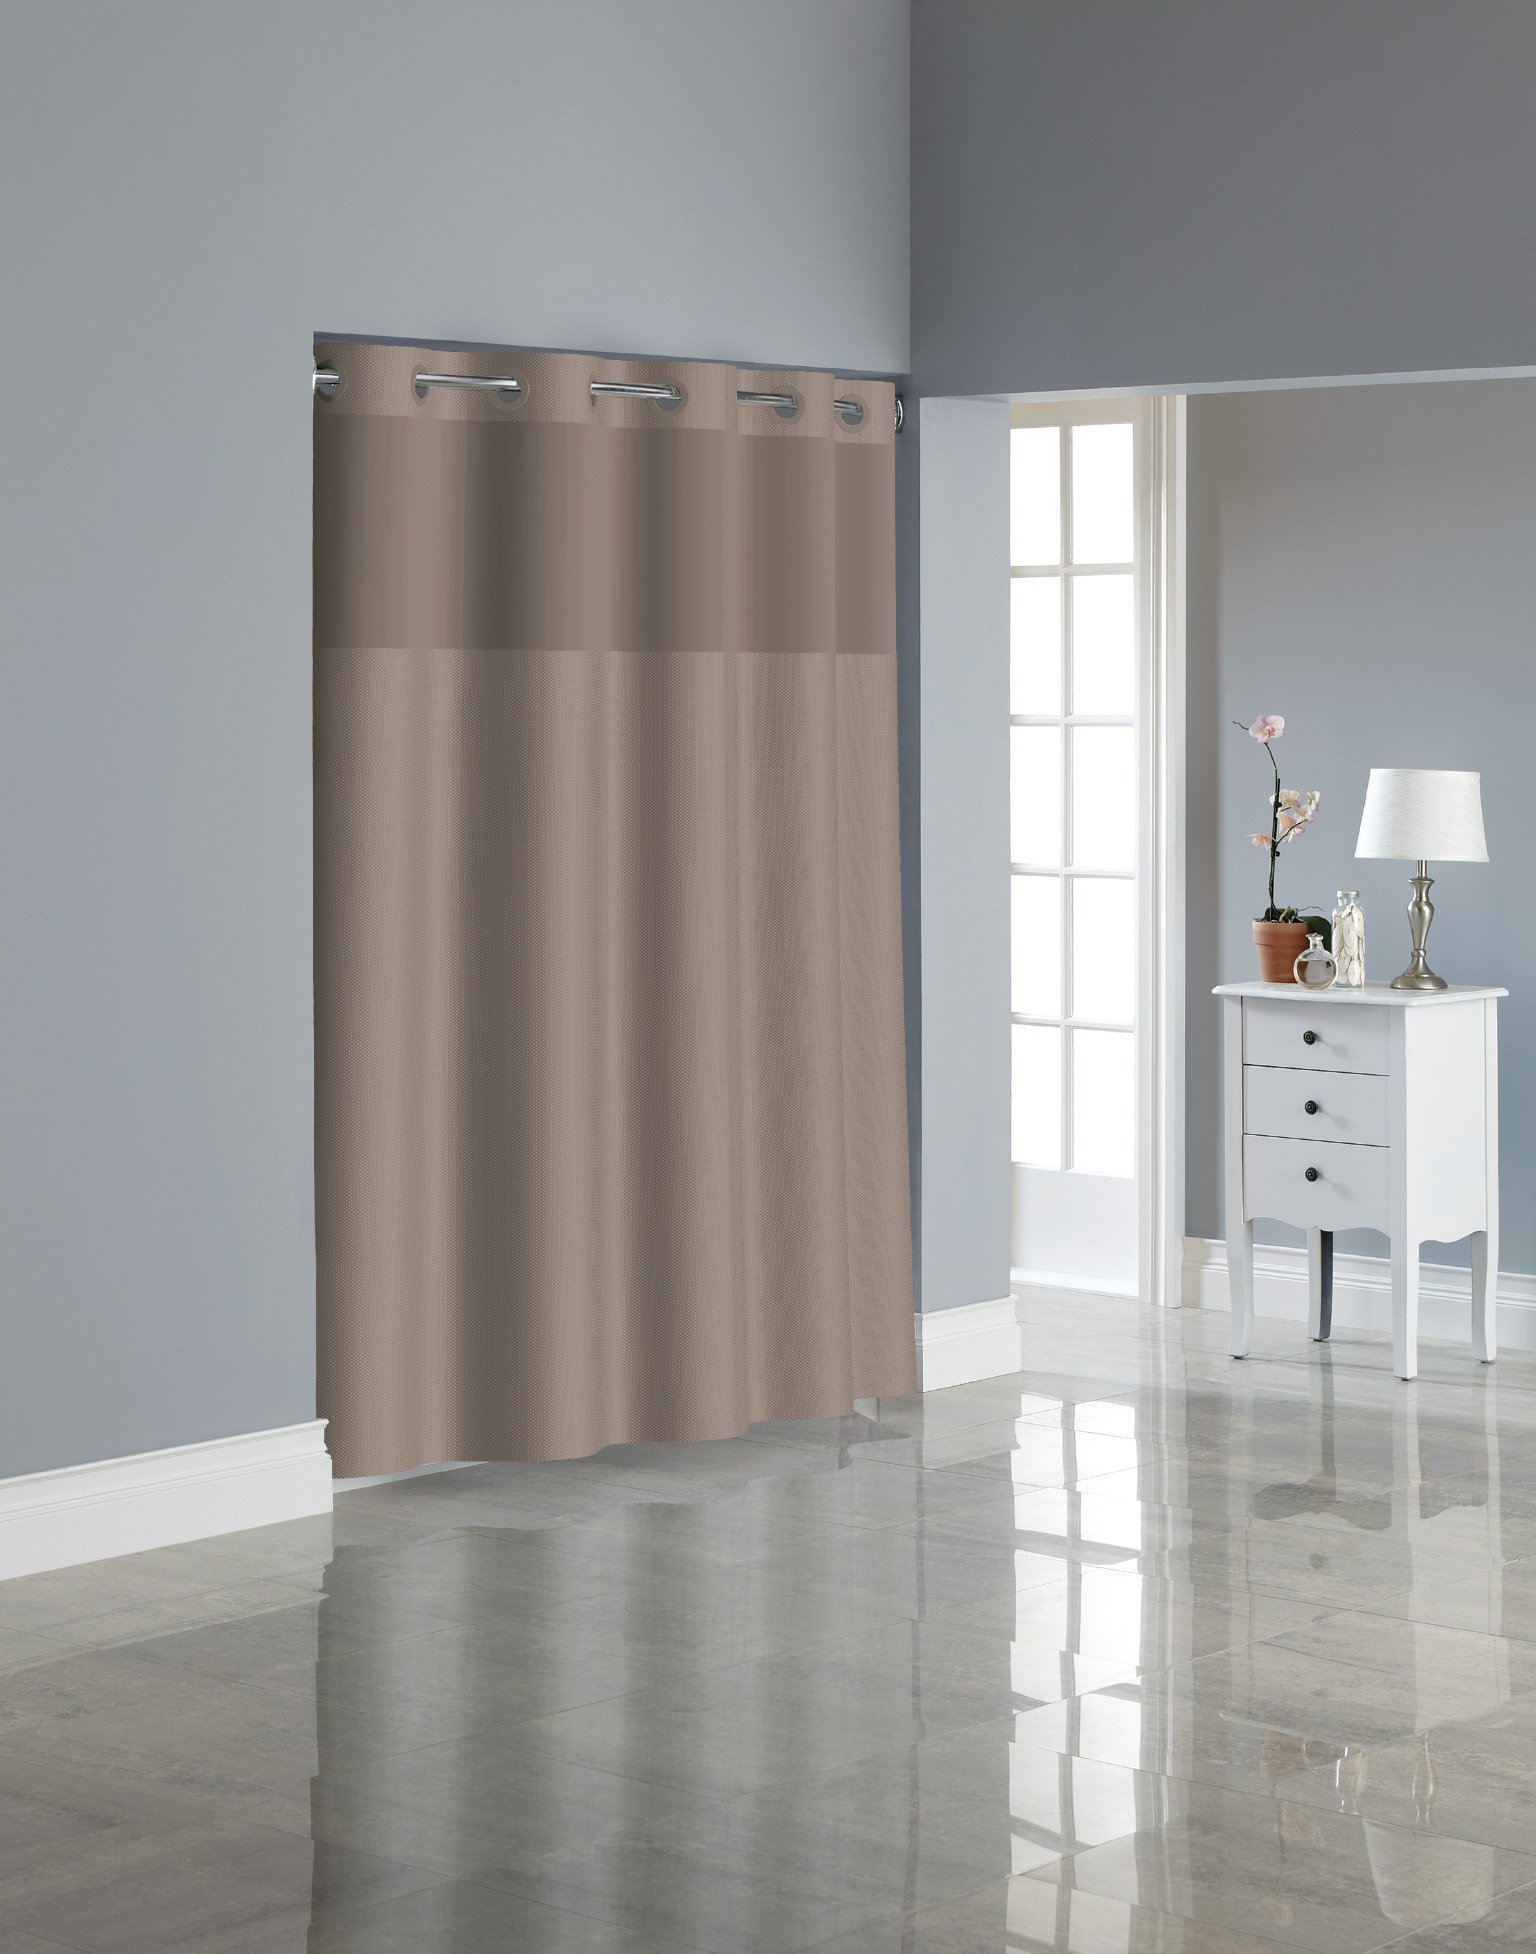 Hookless RBH80MY221 Fabric Shower Curtain with Built in PEVA Liner - Desert Taupe